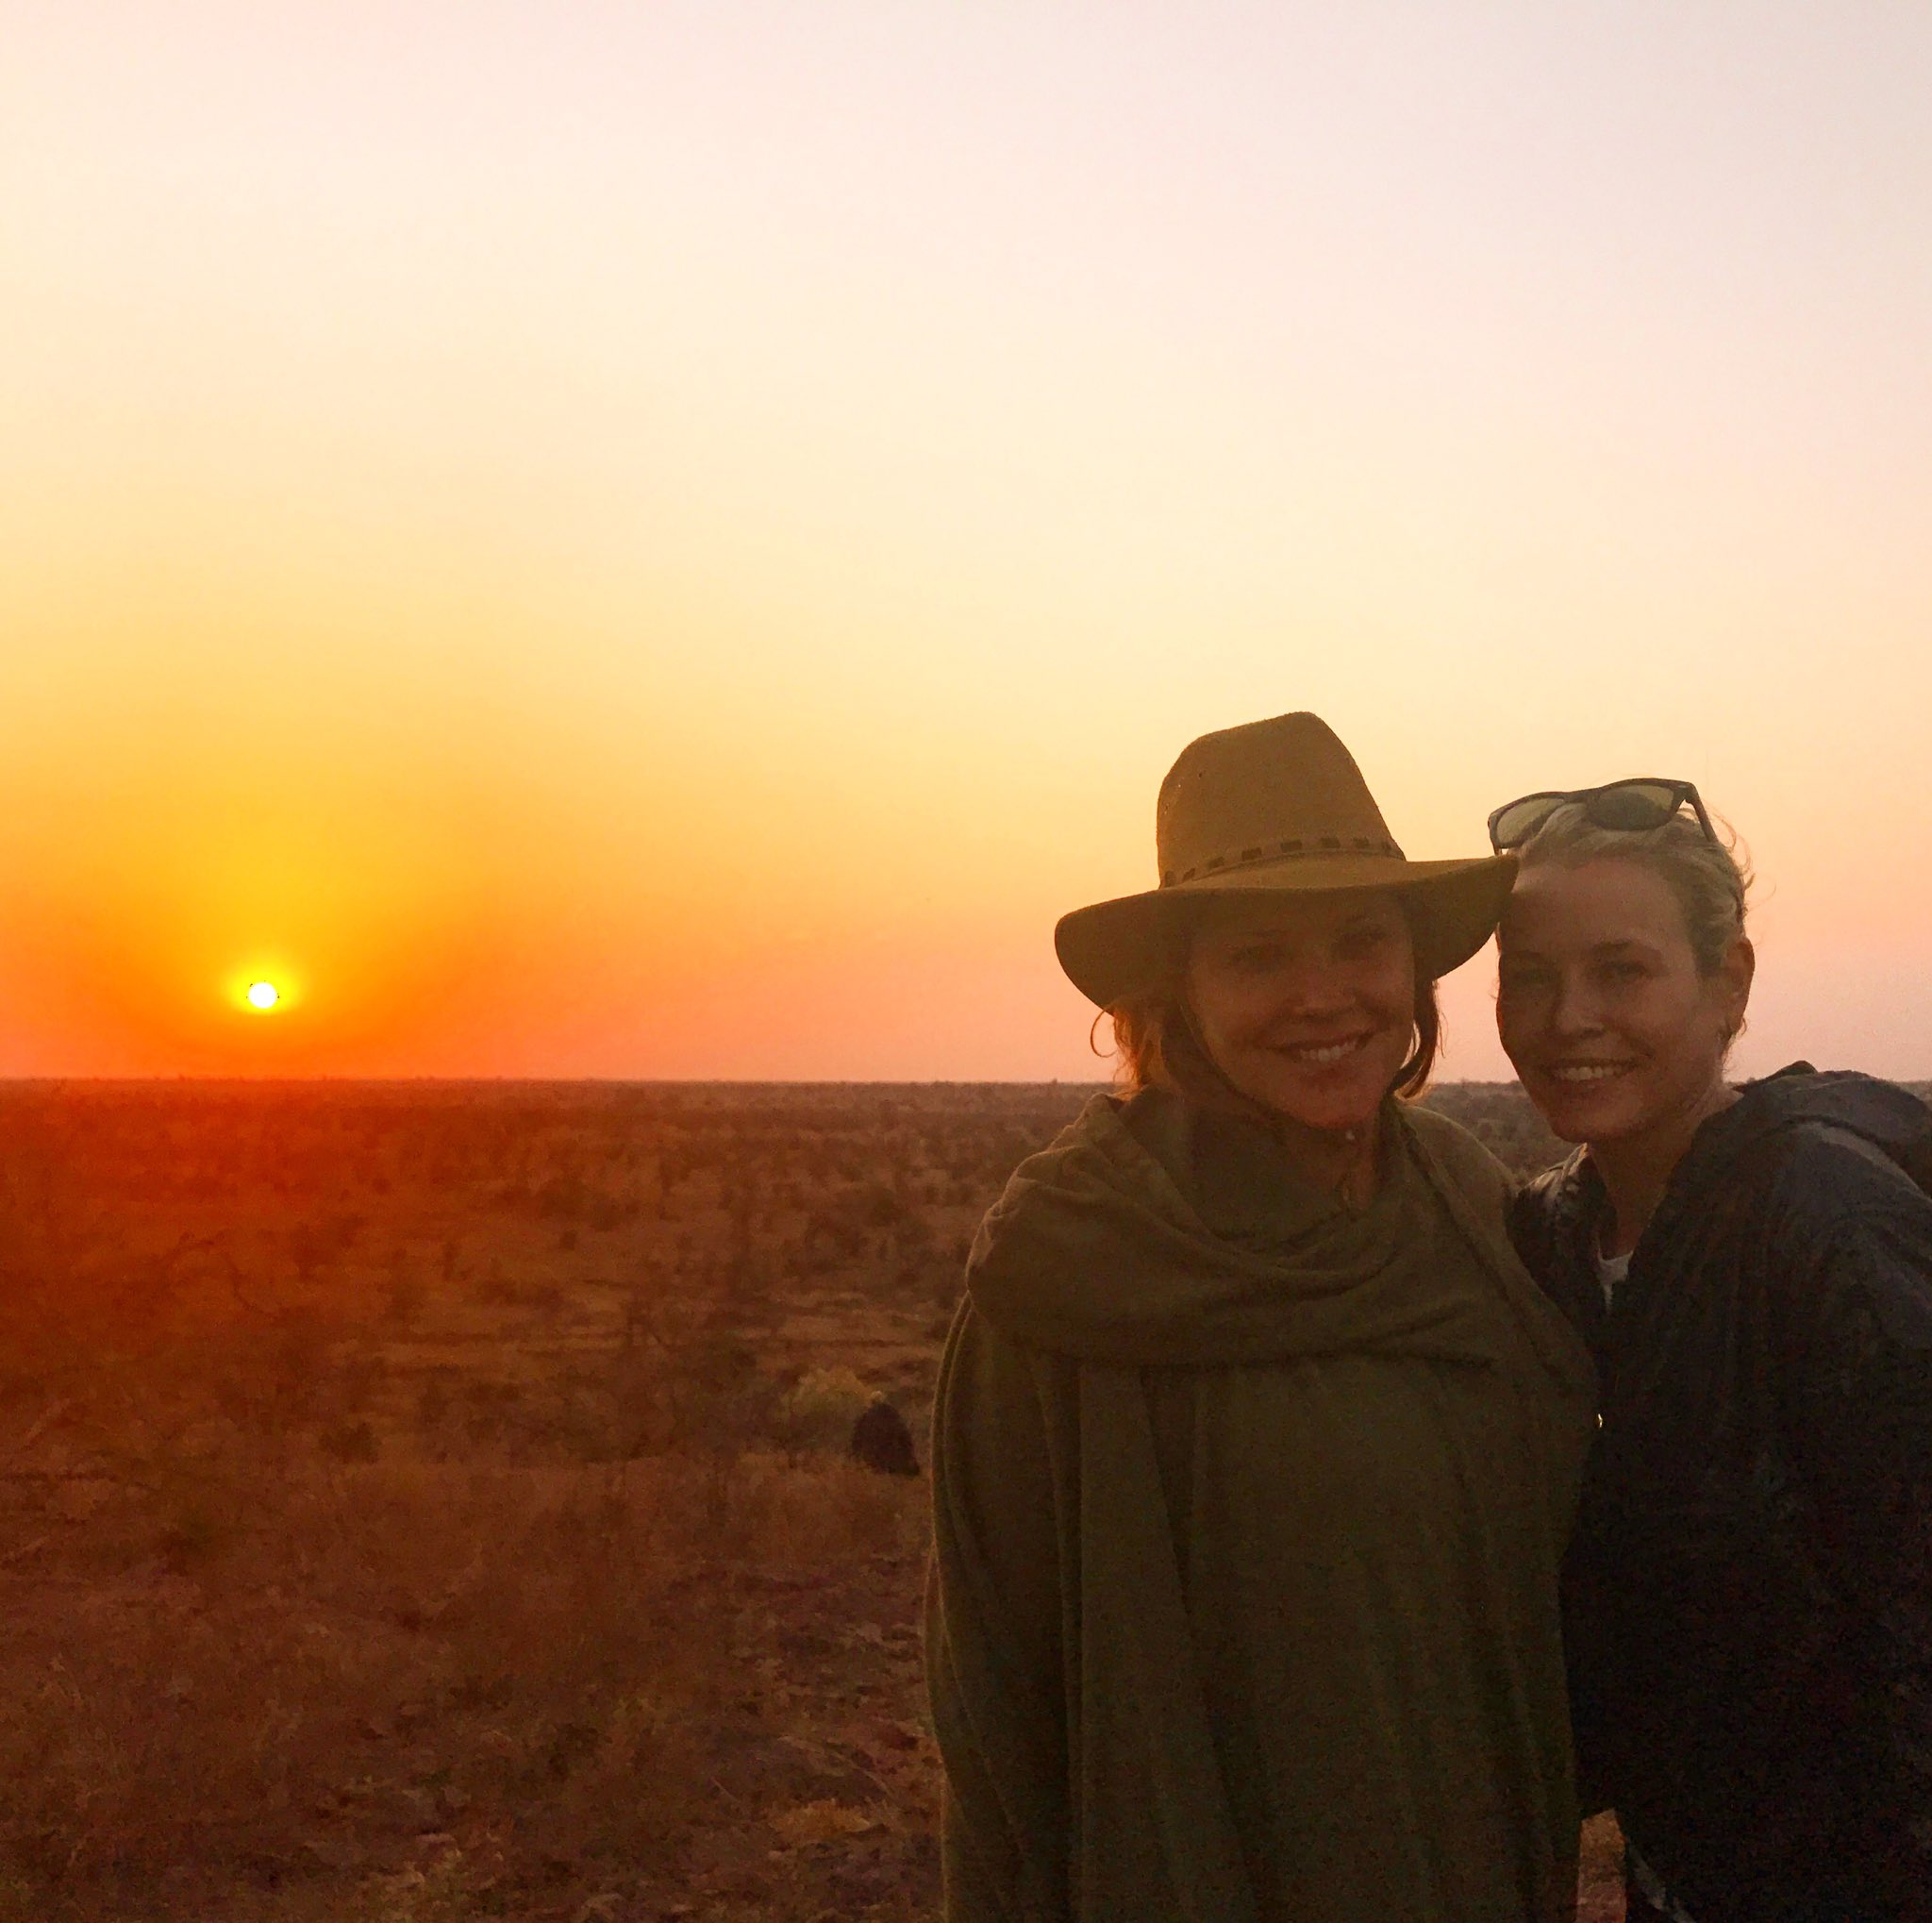 Me and my bestie @marycmccormack trying to act like we don't care about our country while on vacation in Africa. https://t.co/LJ0YTOEKG3